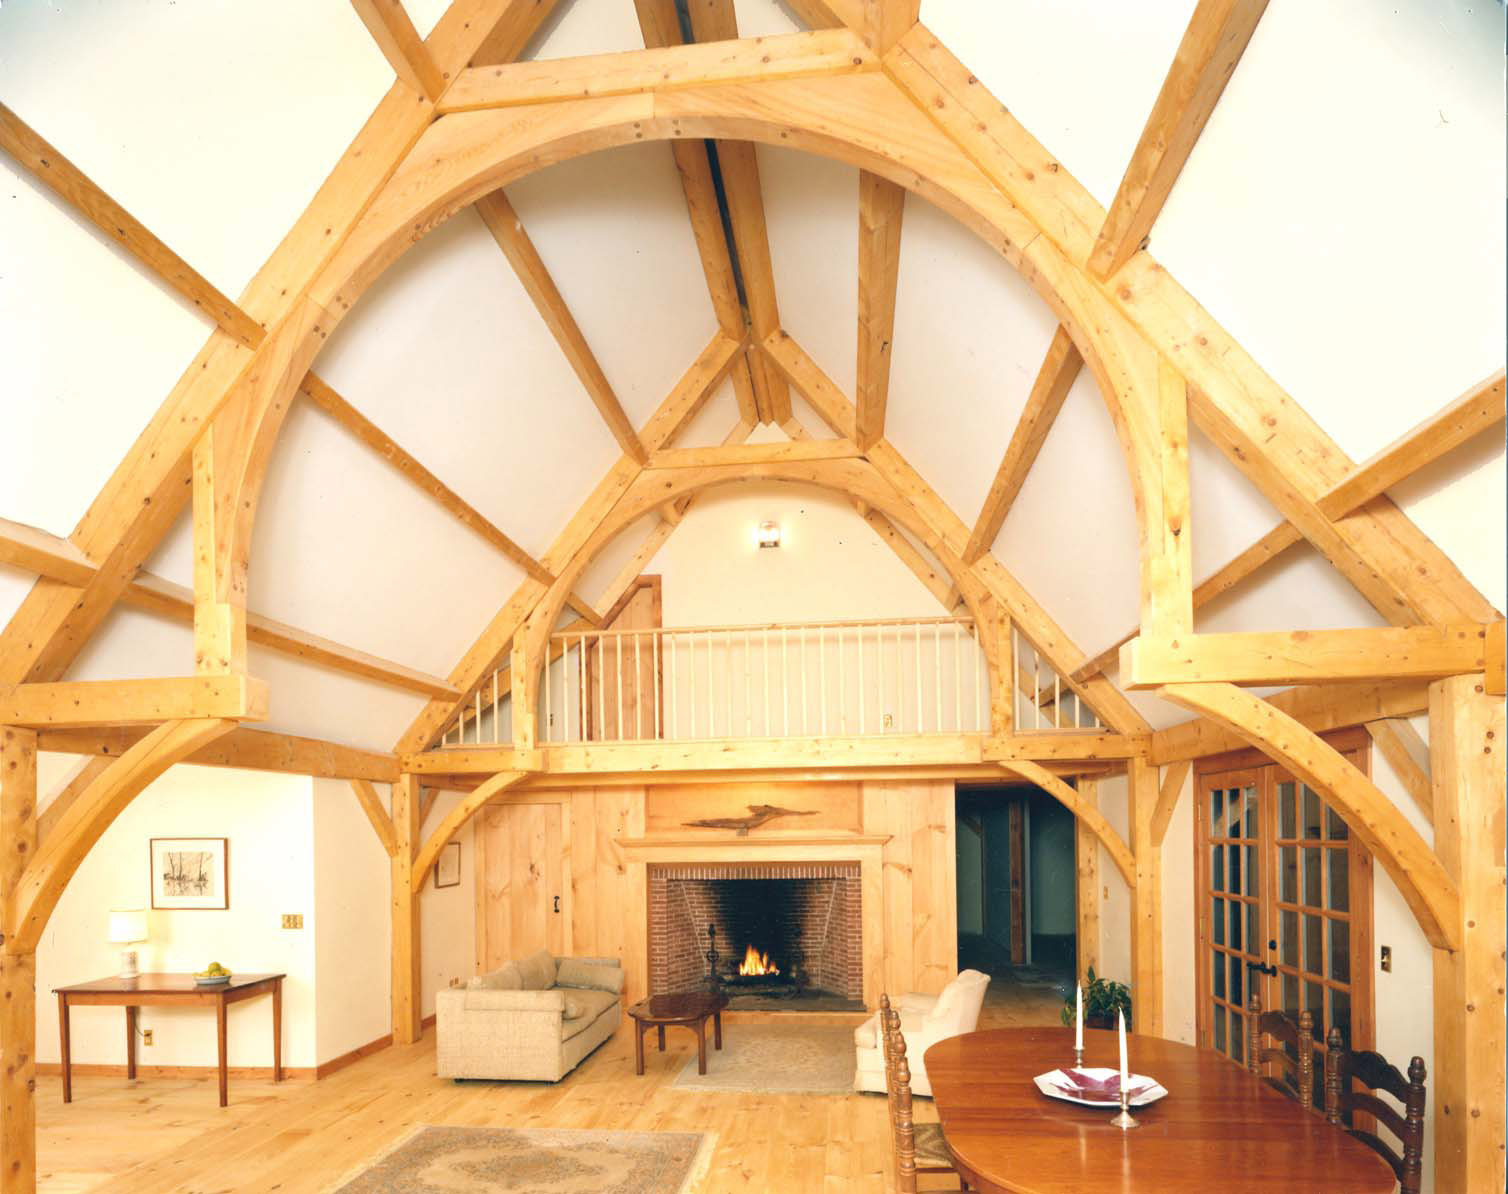 Hammerbeam roof wikidwelling for How to build a timber frame house